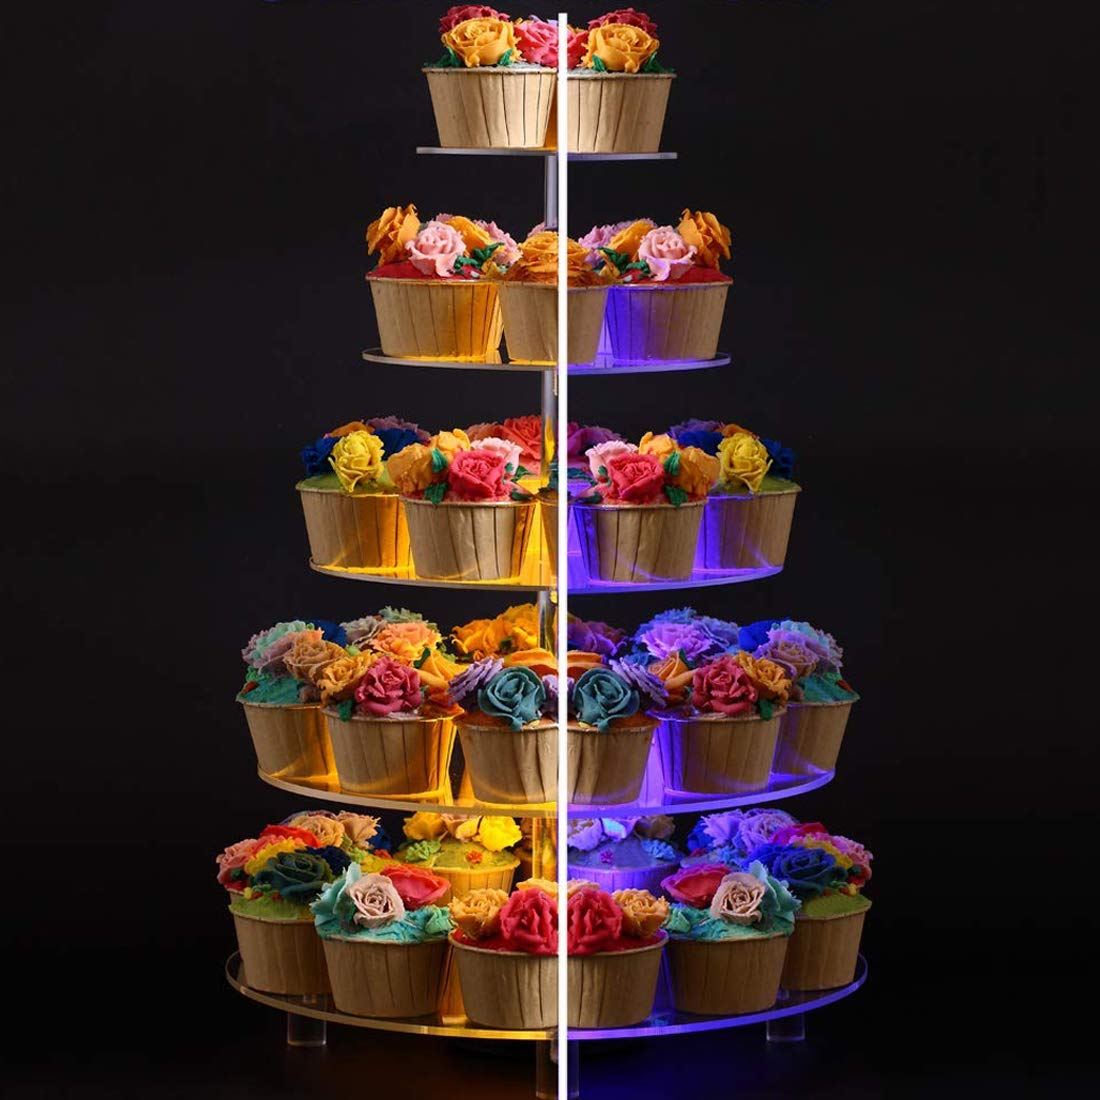 BonNoces 5 Tier Round Cupcake Stand with LED Light, 7 Color Variations - Acrylic Dessert Cake Stand - Tiered Pastry Tower with Base for Wedding, Birthday Party by BonNoces